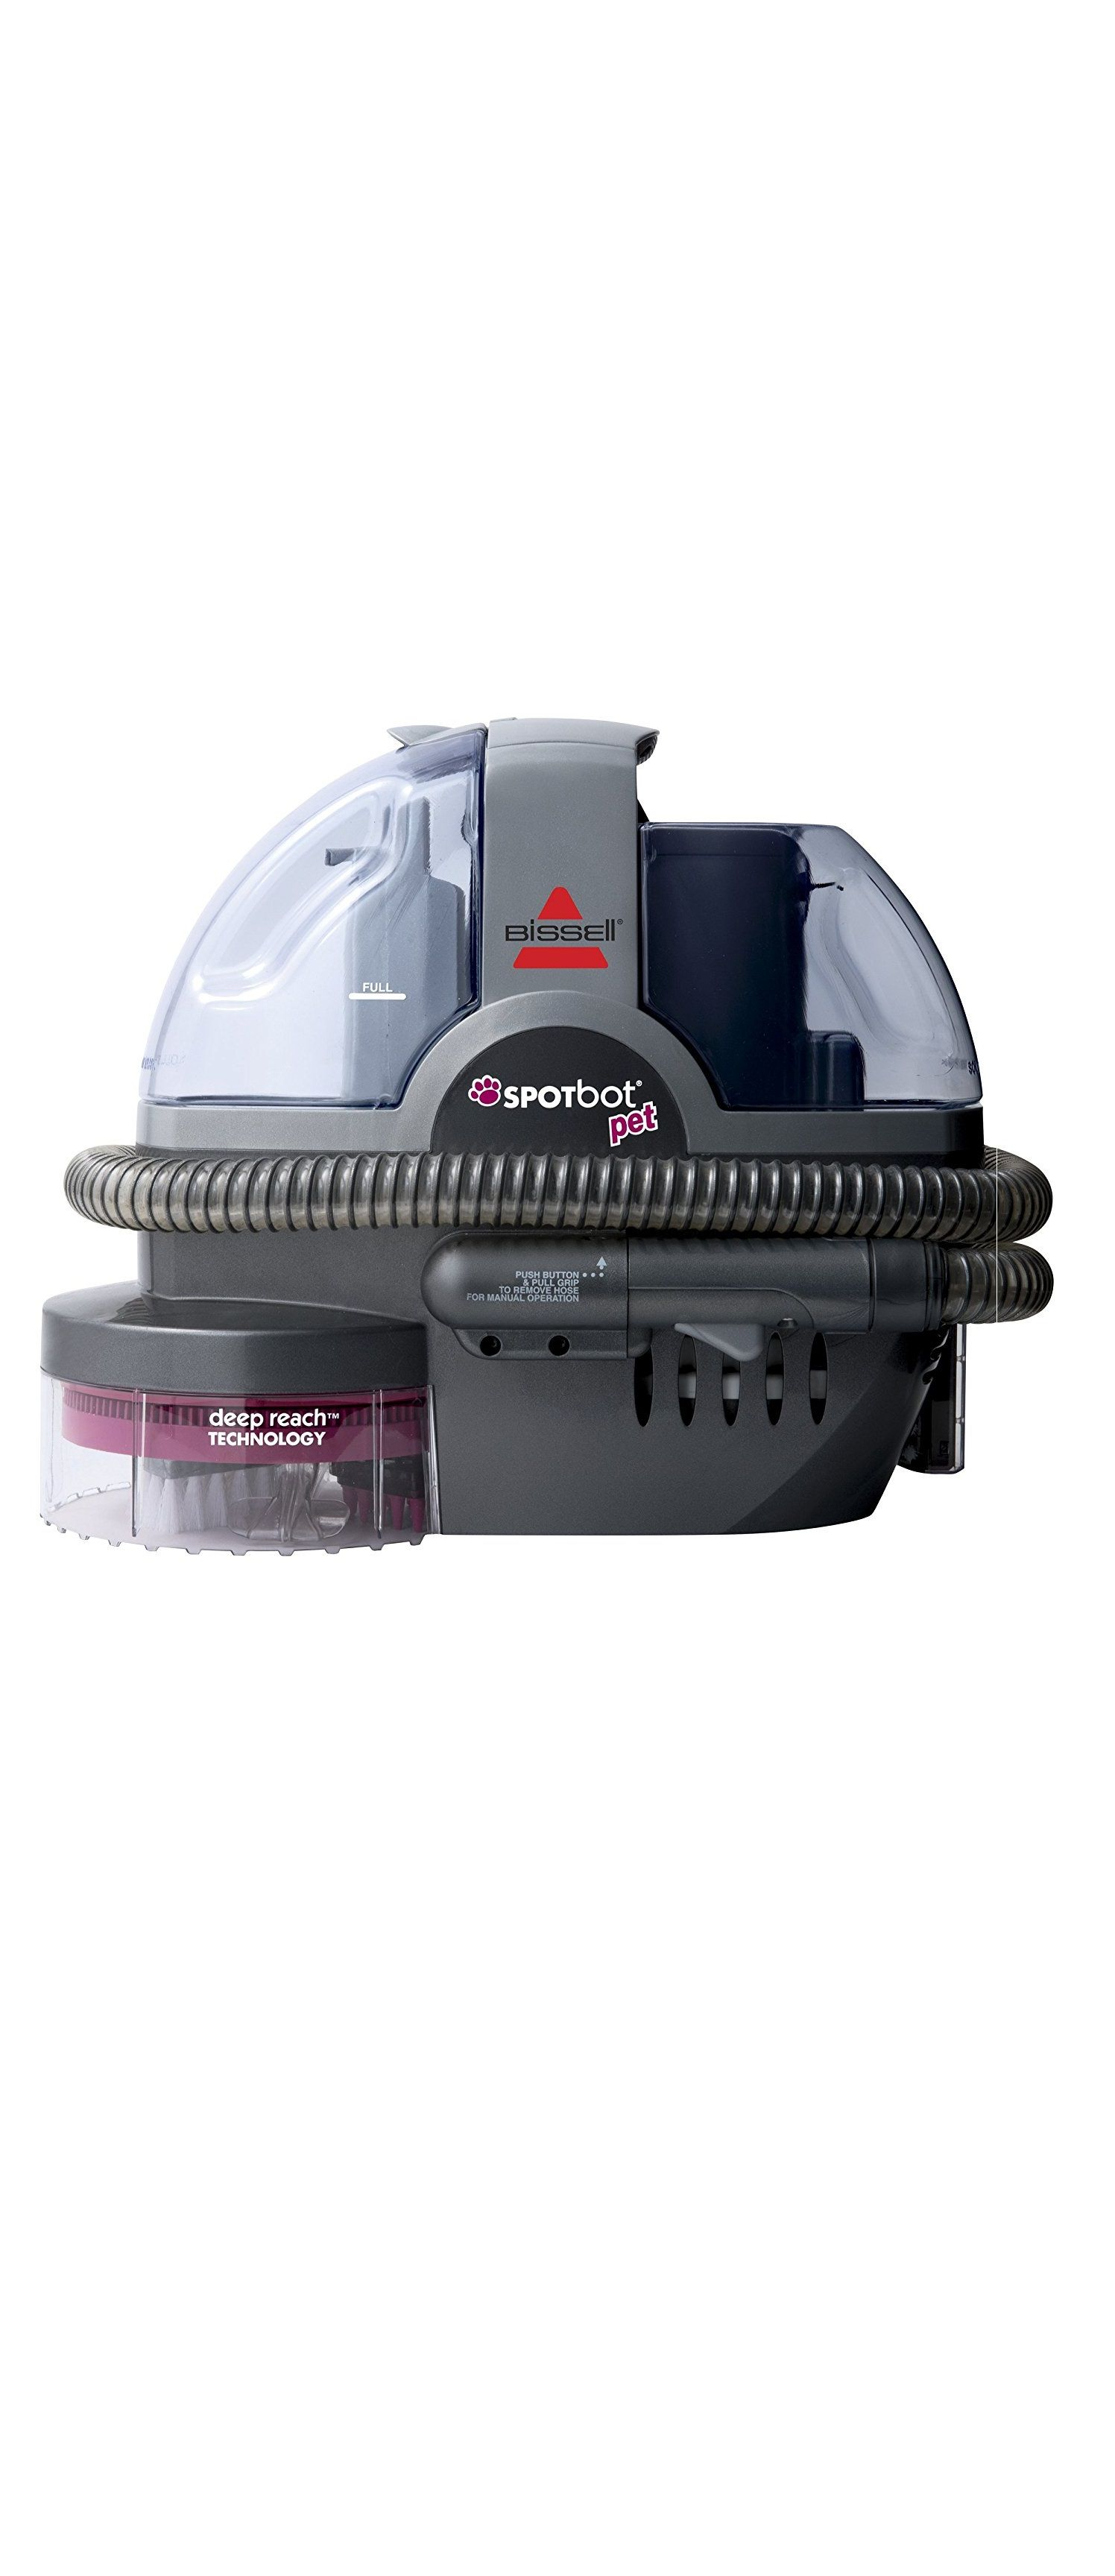 Best Rated Carpet Cleaners And Carpet Shampooers Reviews - Best rated steam cleaners for the home